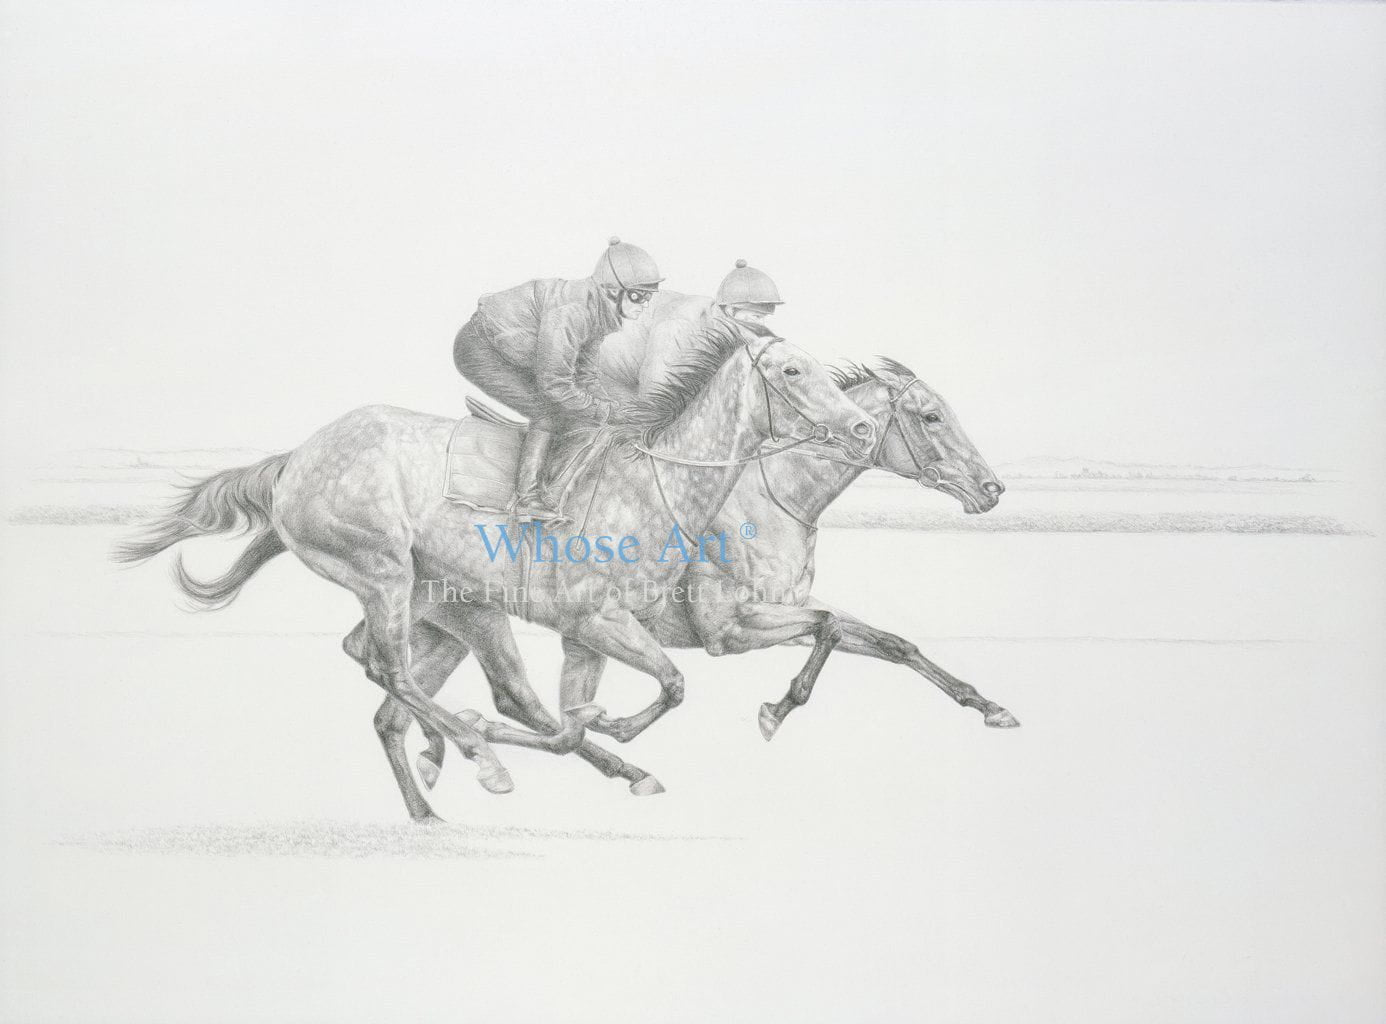 Equestrian Art drawing shown online of a grey and bay horse on the gallops drawn in pencil and shaded in detail.